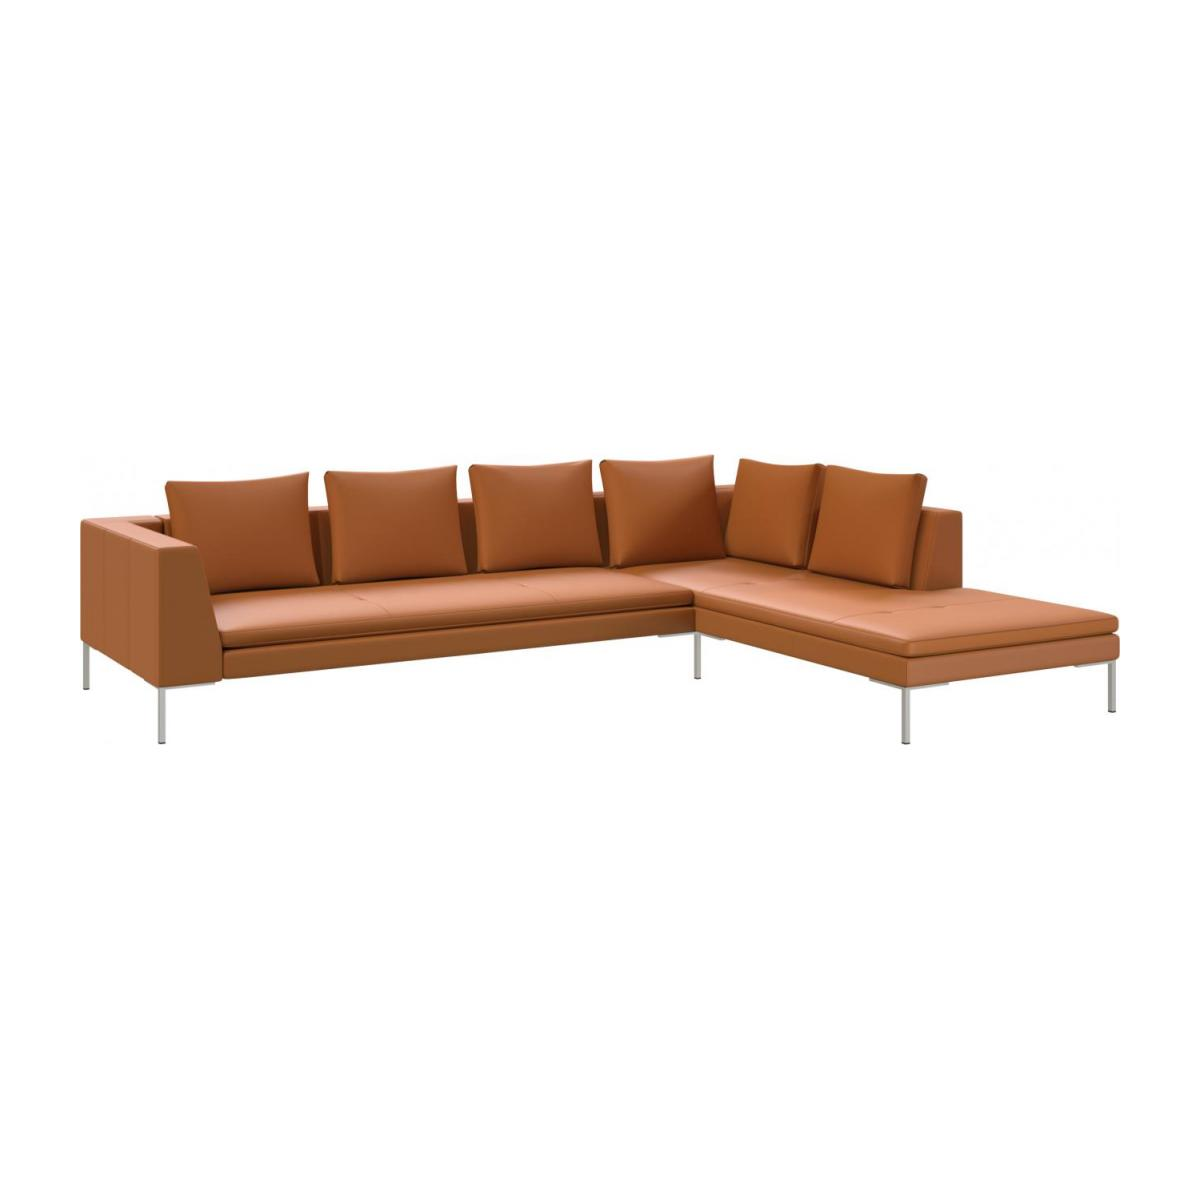 3 seater sofa with chaise longue on the right in Savoy semi-aniline leather, cognac  n°1